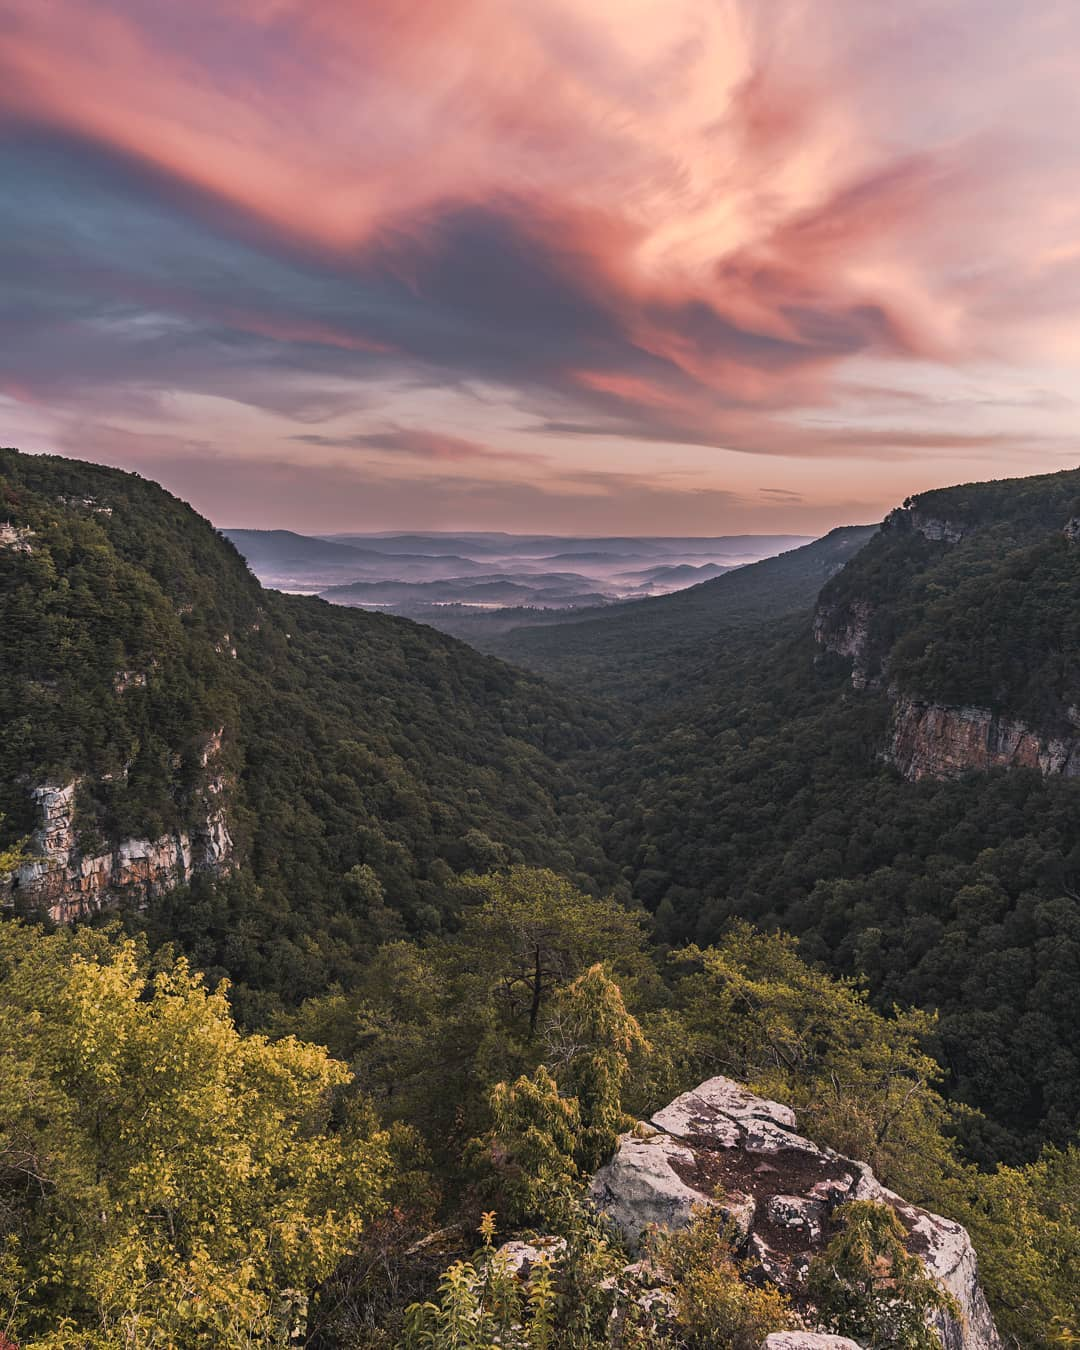 Cloudland Canyon in Rising Fawn, Georgia. Photo by @natebowery